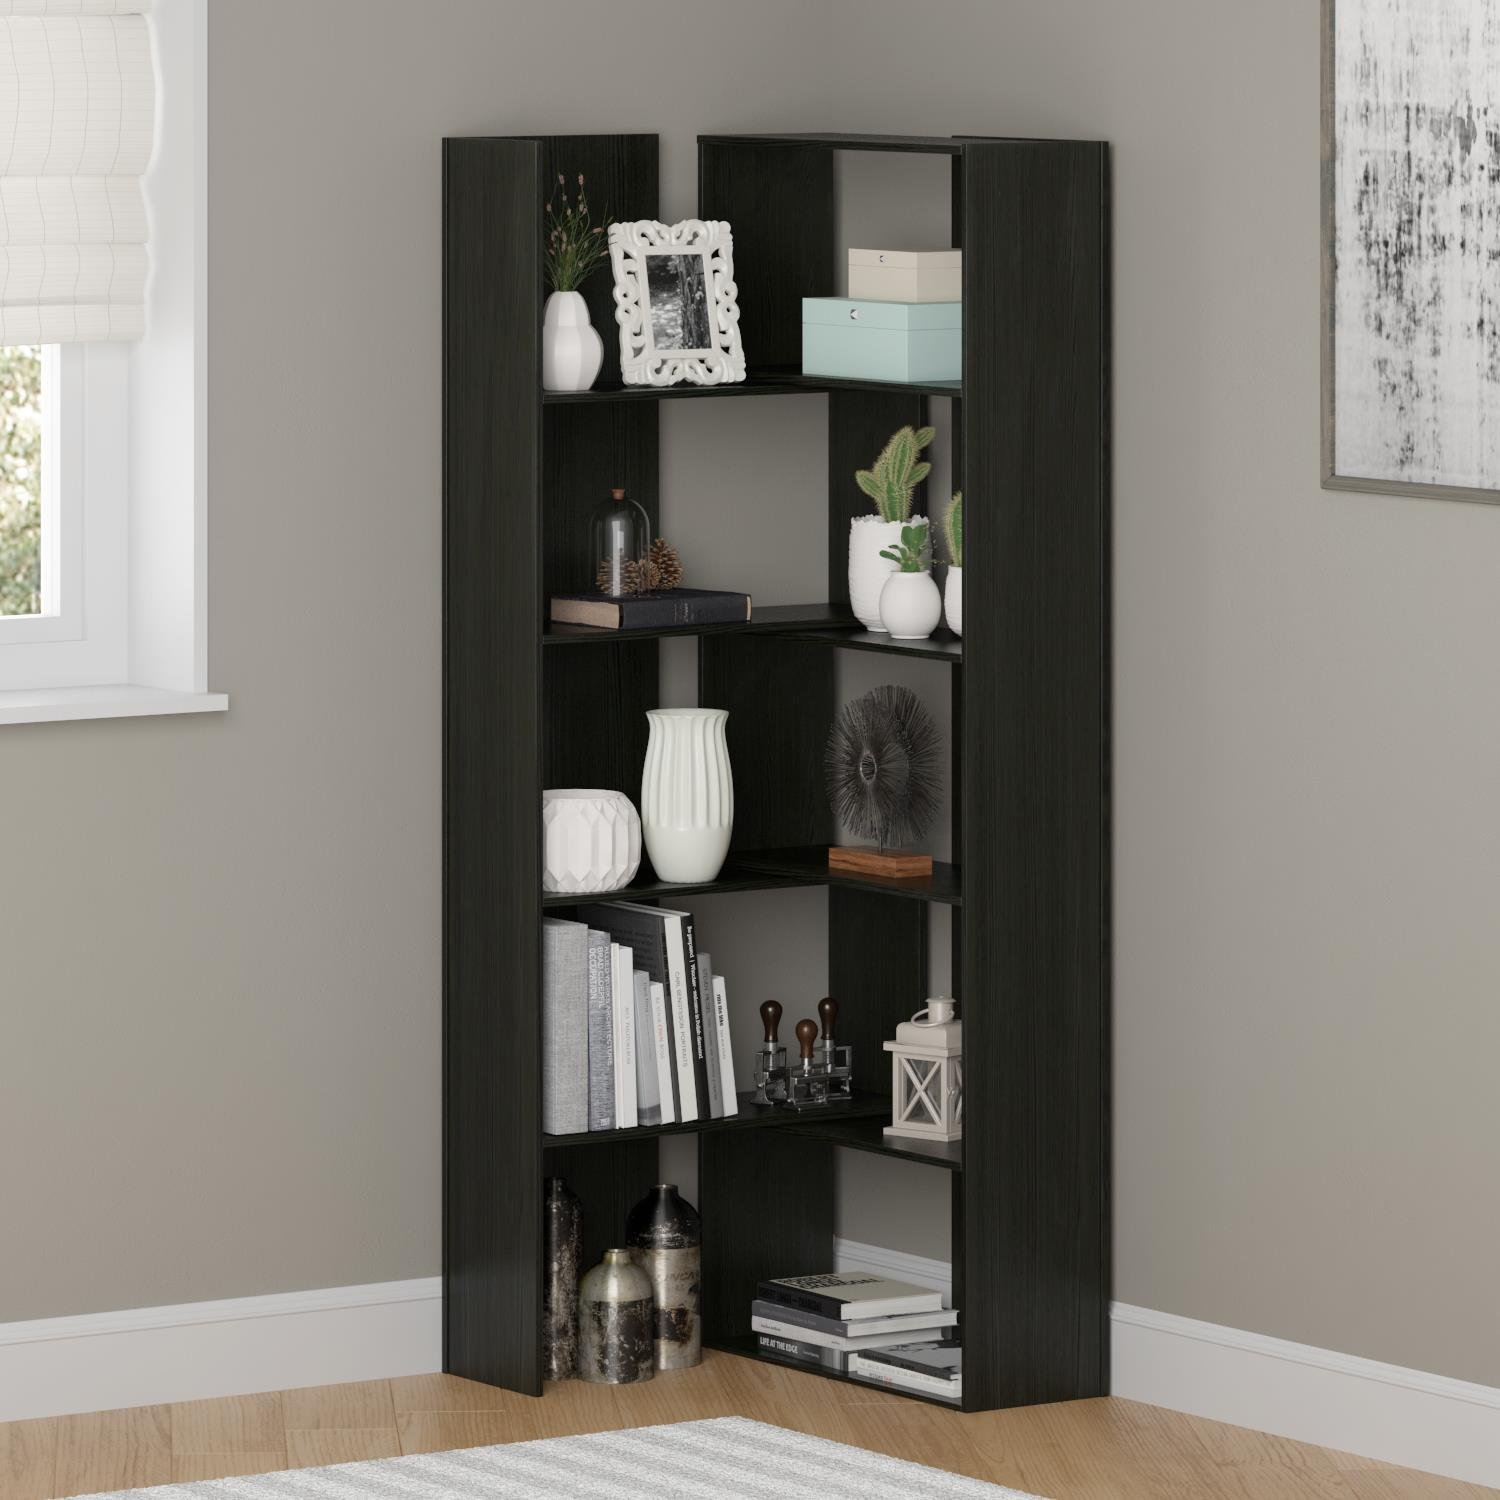 burr street case church furniture bookcases at bookcase open enclosed walnut antique pieces f master storage bespoke id